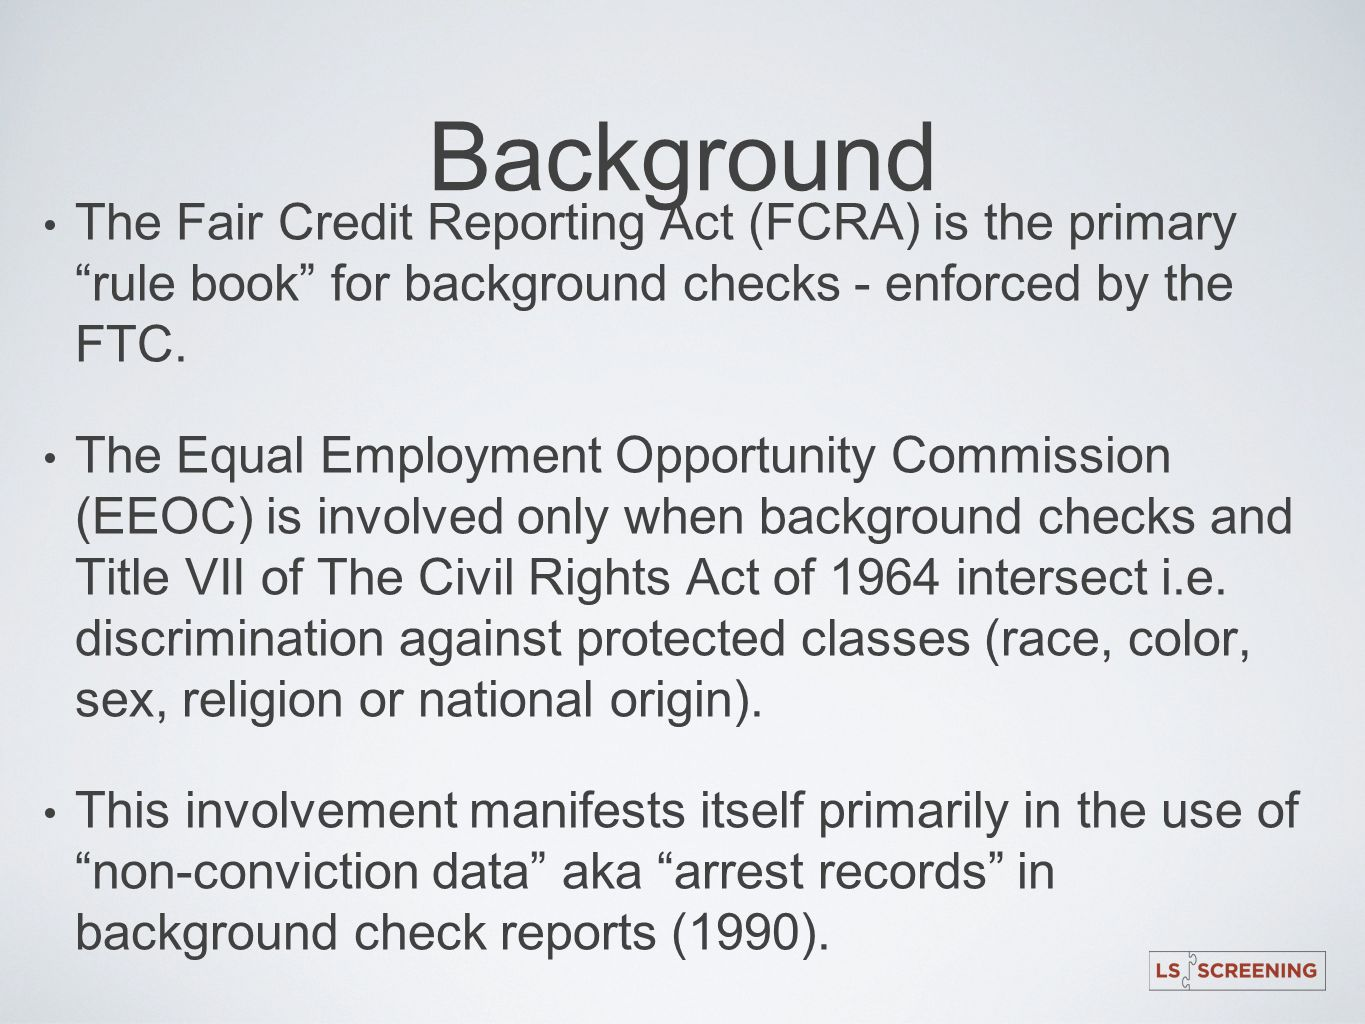 Background The Fair Credit Reporting Act (FCRA) is the primary rule book for background checks - enforced by the FTC. The Equal Employment Opportunity